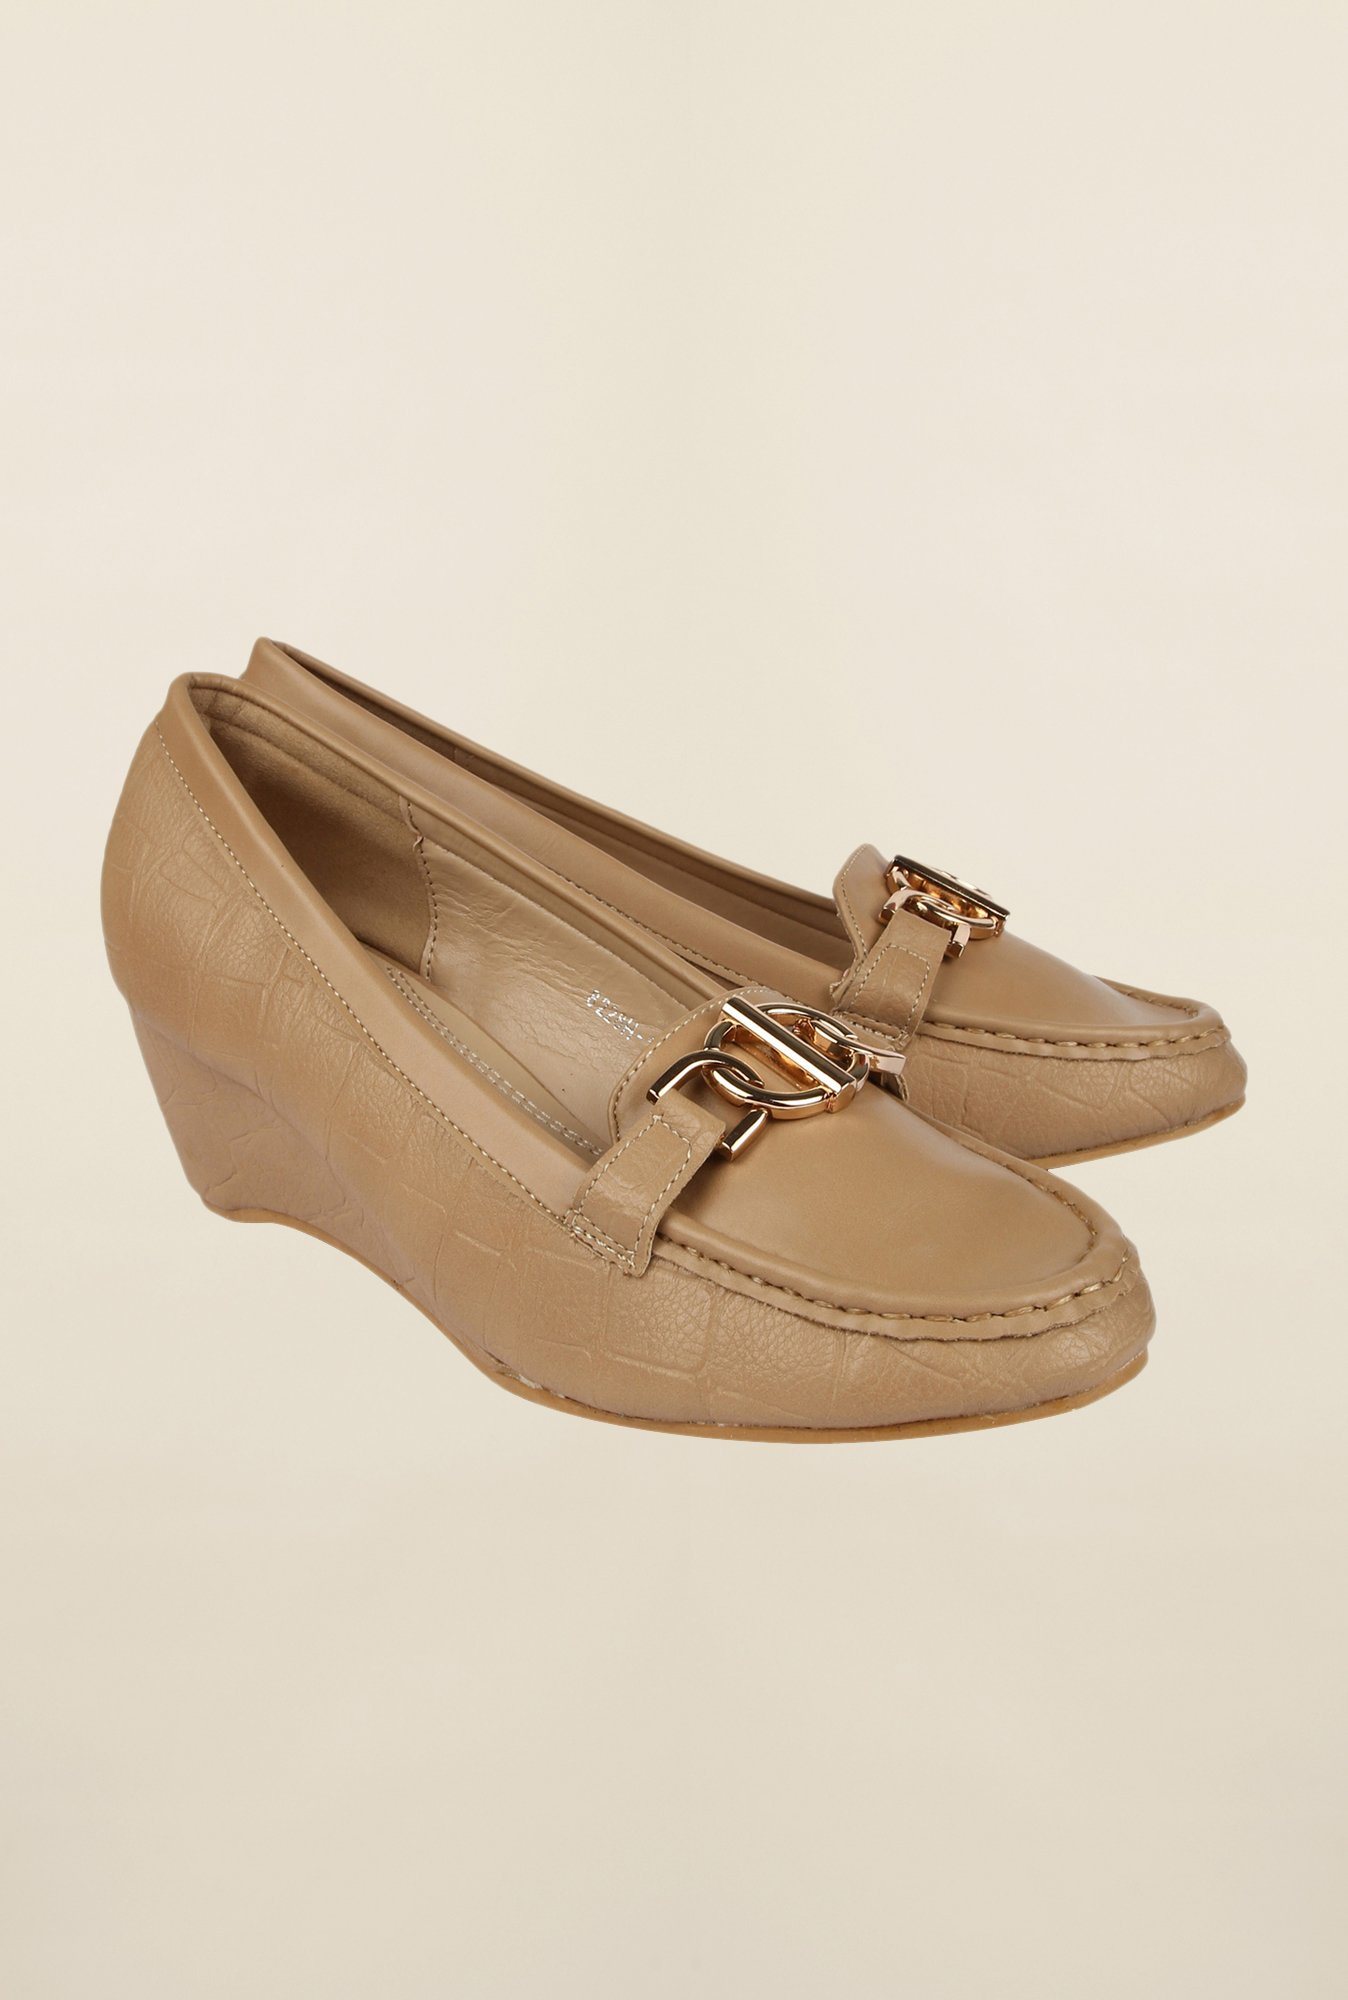 Cobblerz Beige Moccasin Shoes